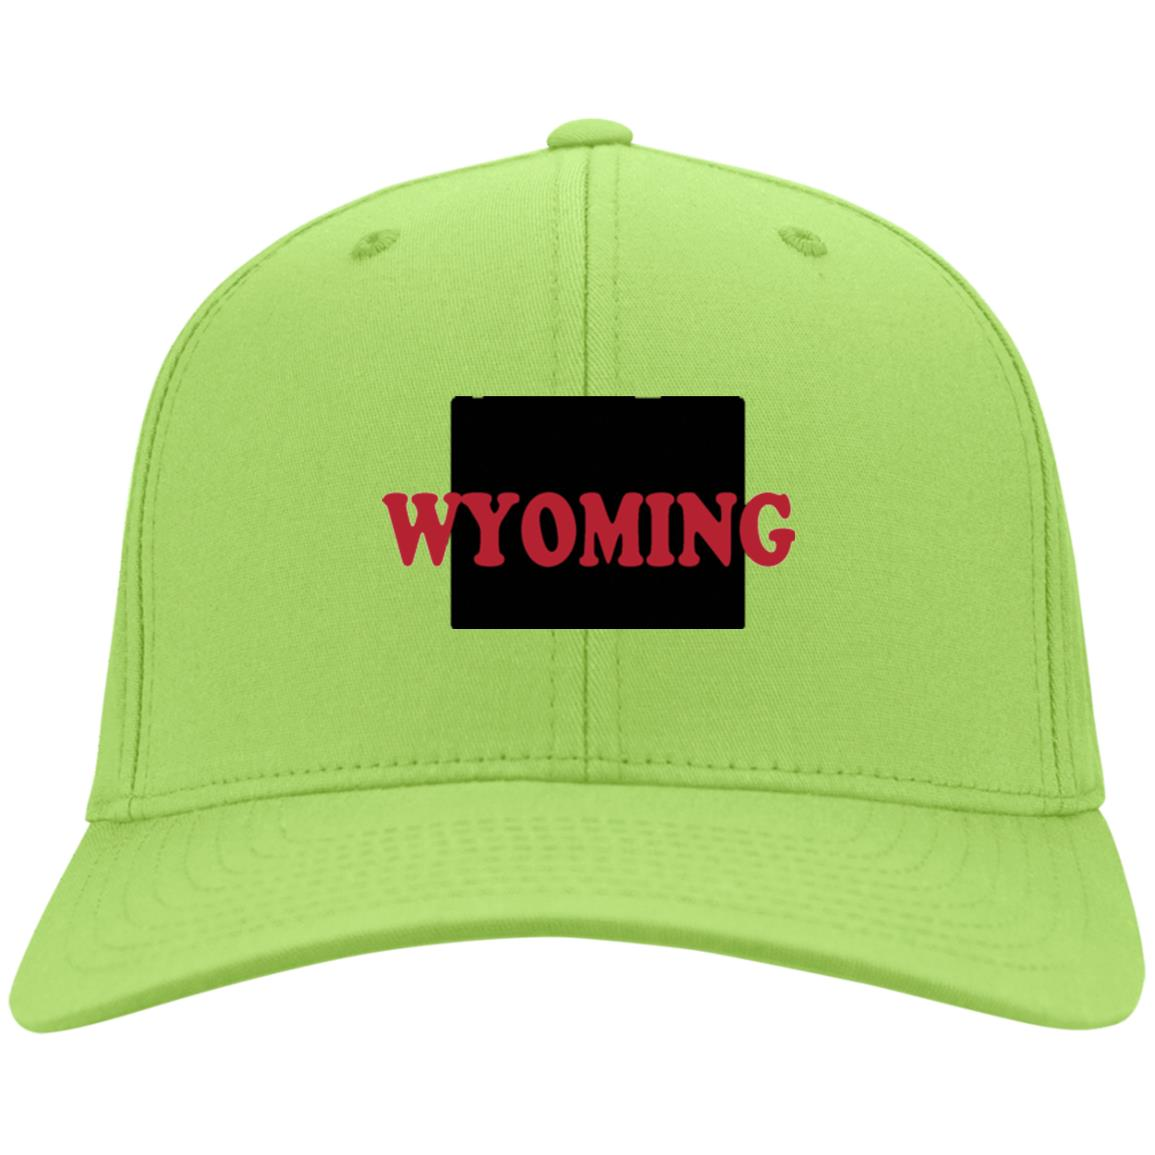 Wyoming State Hat